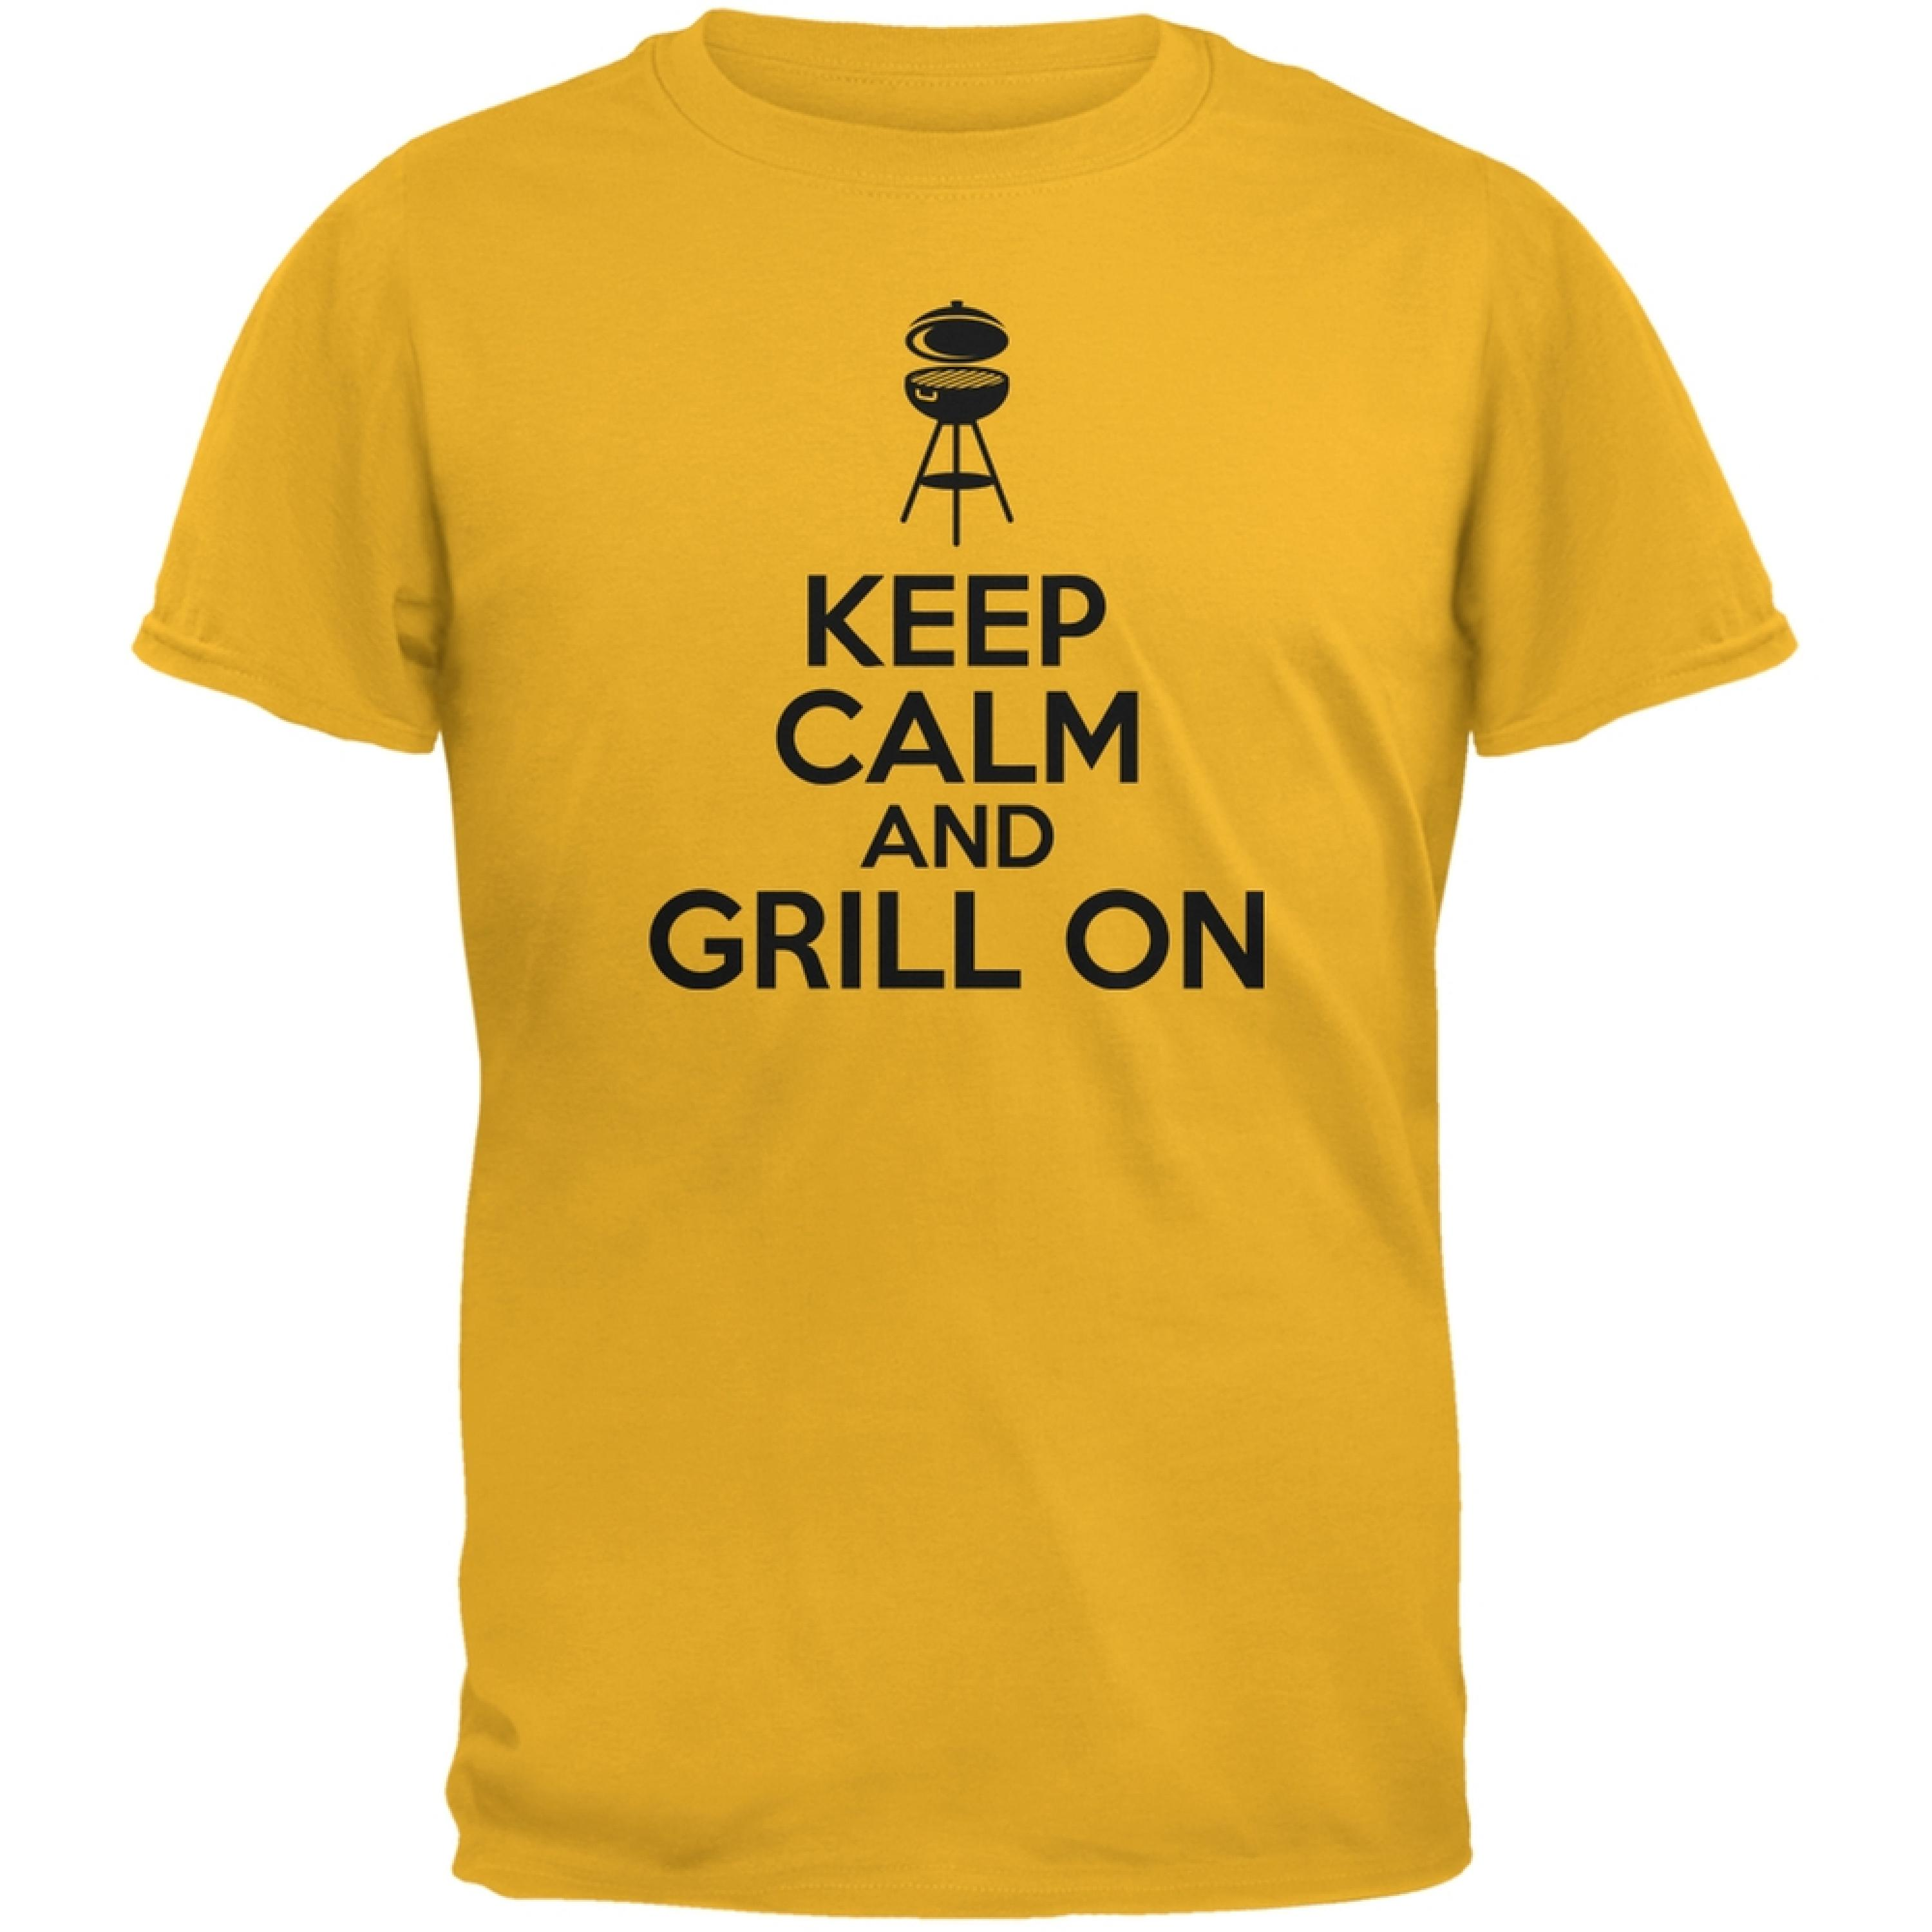 Keep Calm Grill On Gold Adult T-Shirt